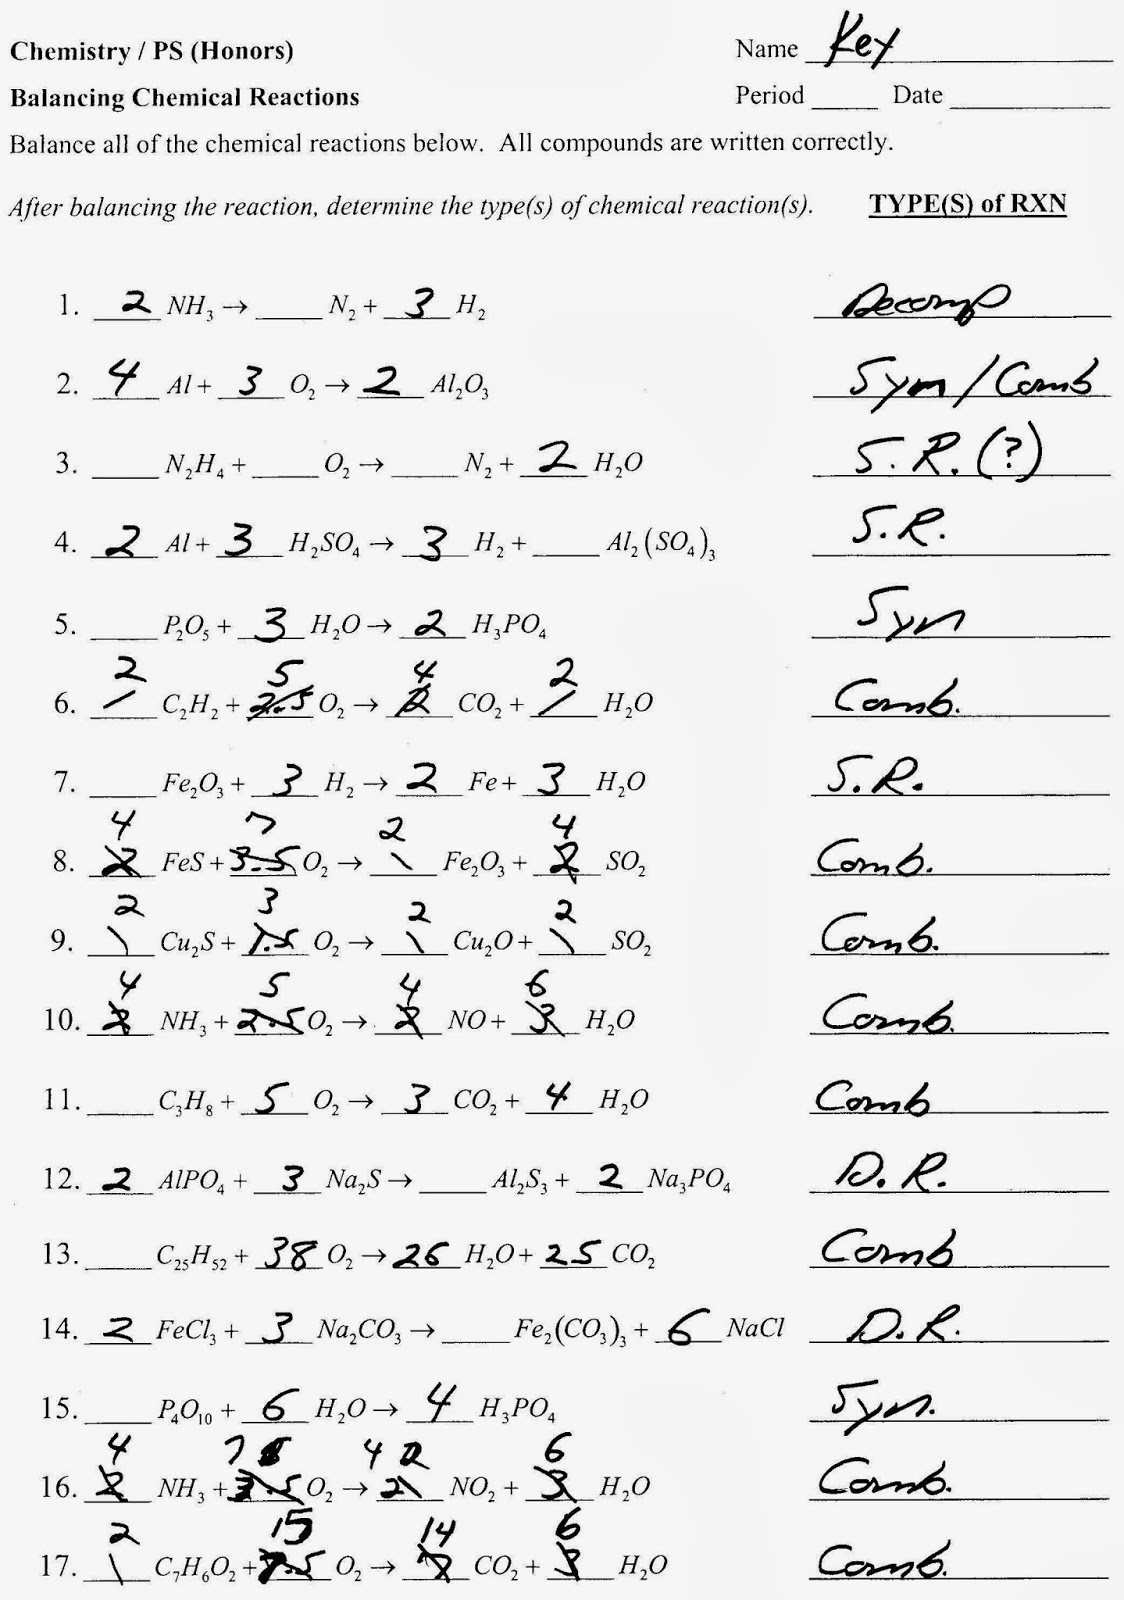 Aldiablosus  Ravishing Balancing Chemical Equations Worksheets Balancing Chemical  With Hot Balancing Chemical Equations Worksheet Answer Key On Chemistry Double With Extraordinary Kindergarten Worksheets Numbers  Also Adjectives Of Comparison Worksheets In Addition Conjunction Worksheets For Grade  And Simple Past Tense Worksheets For Grade  As Well As Islamic Worksheets For Children Additionally Sample Excel Worksheets From Letstalkhiphopus With Aldiablosus  Hot Balancing Chemical Equations Worksheets Balancing Chemical  With Extraordinary Balancing Chemical Equations Worksheet Answer Key On Chemistry Double And Ravishing Kindergarten Worksheets Numbers  Also Adjectives Of Comparison Worksheets In Addition Conjunction Worksheets For Grade  From Letstalkhiphopus